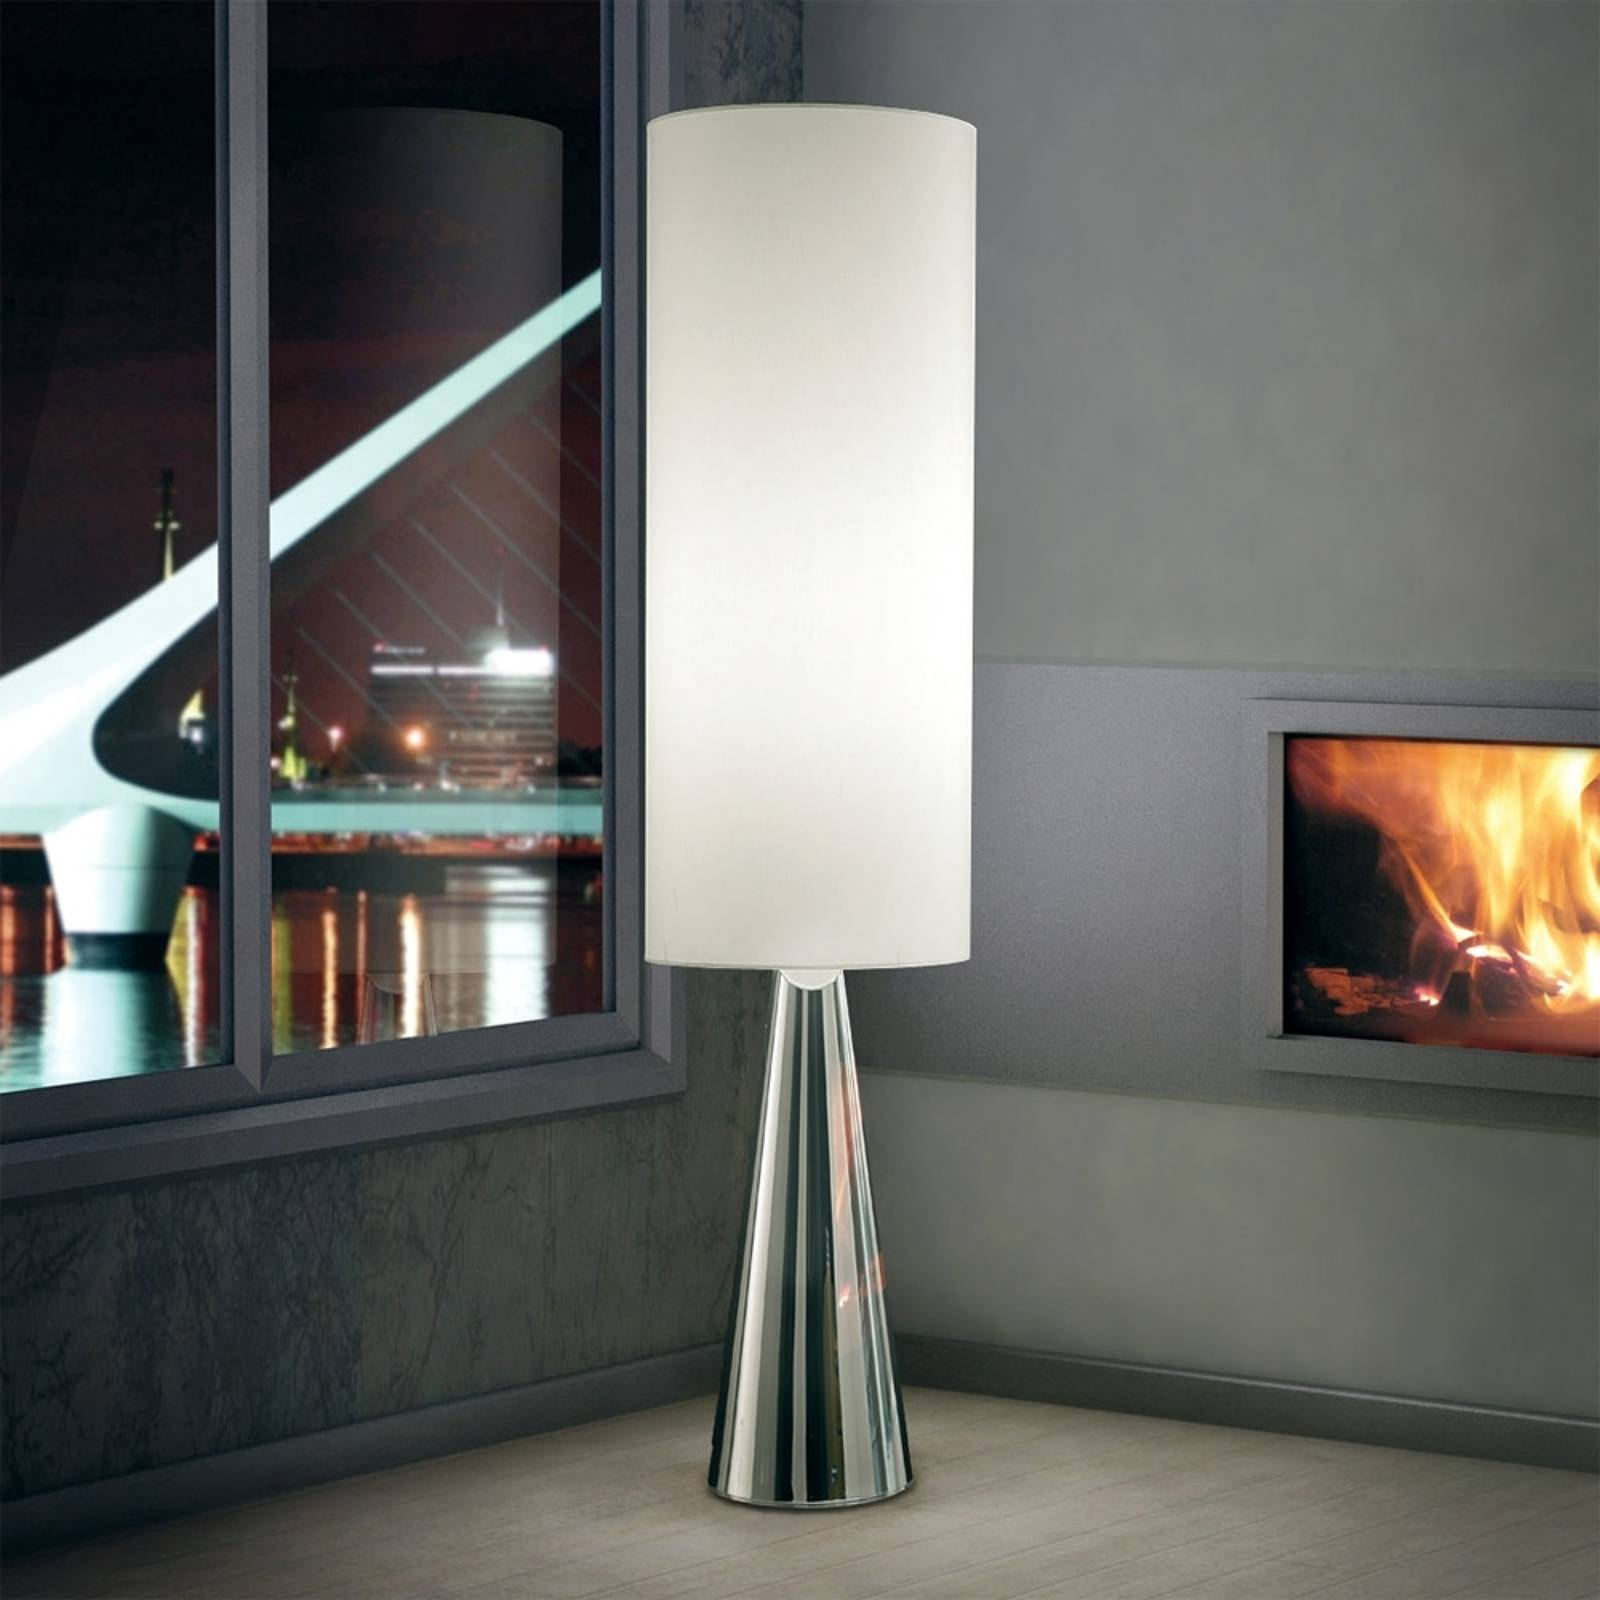 Cylindrical floor lamp Totem from LAM